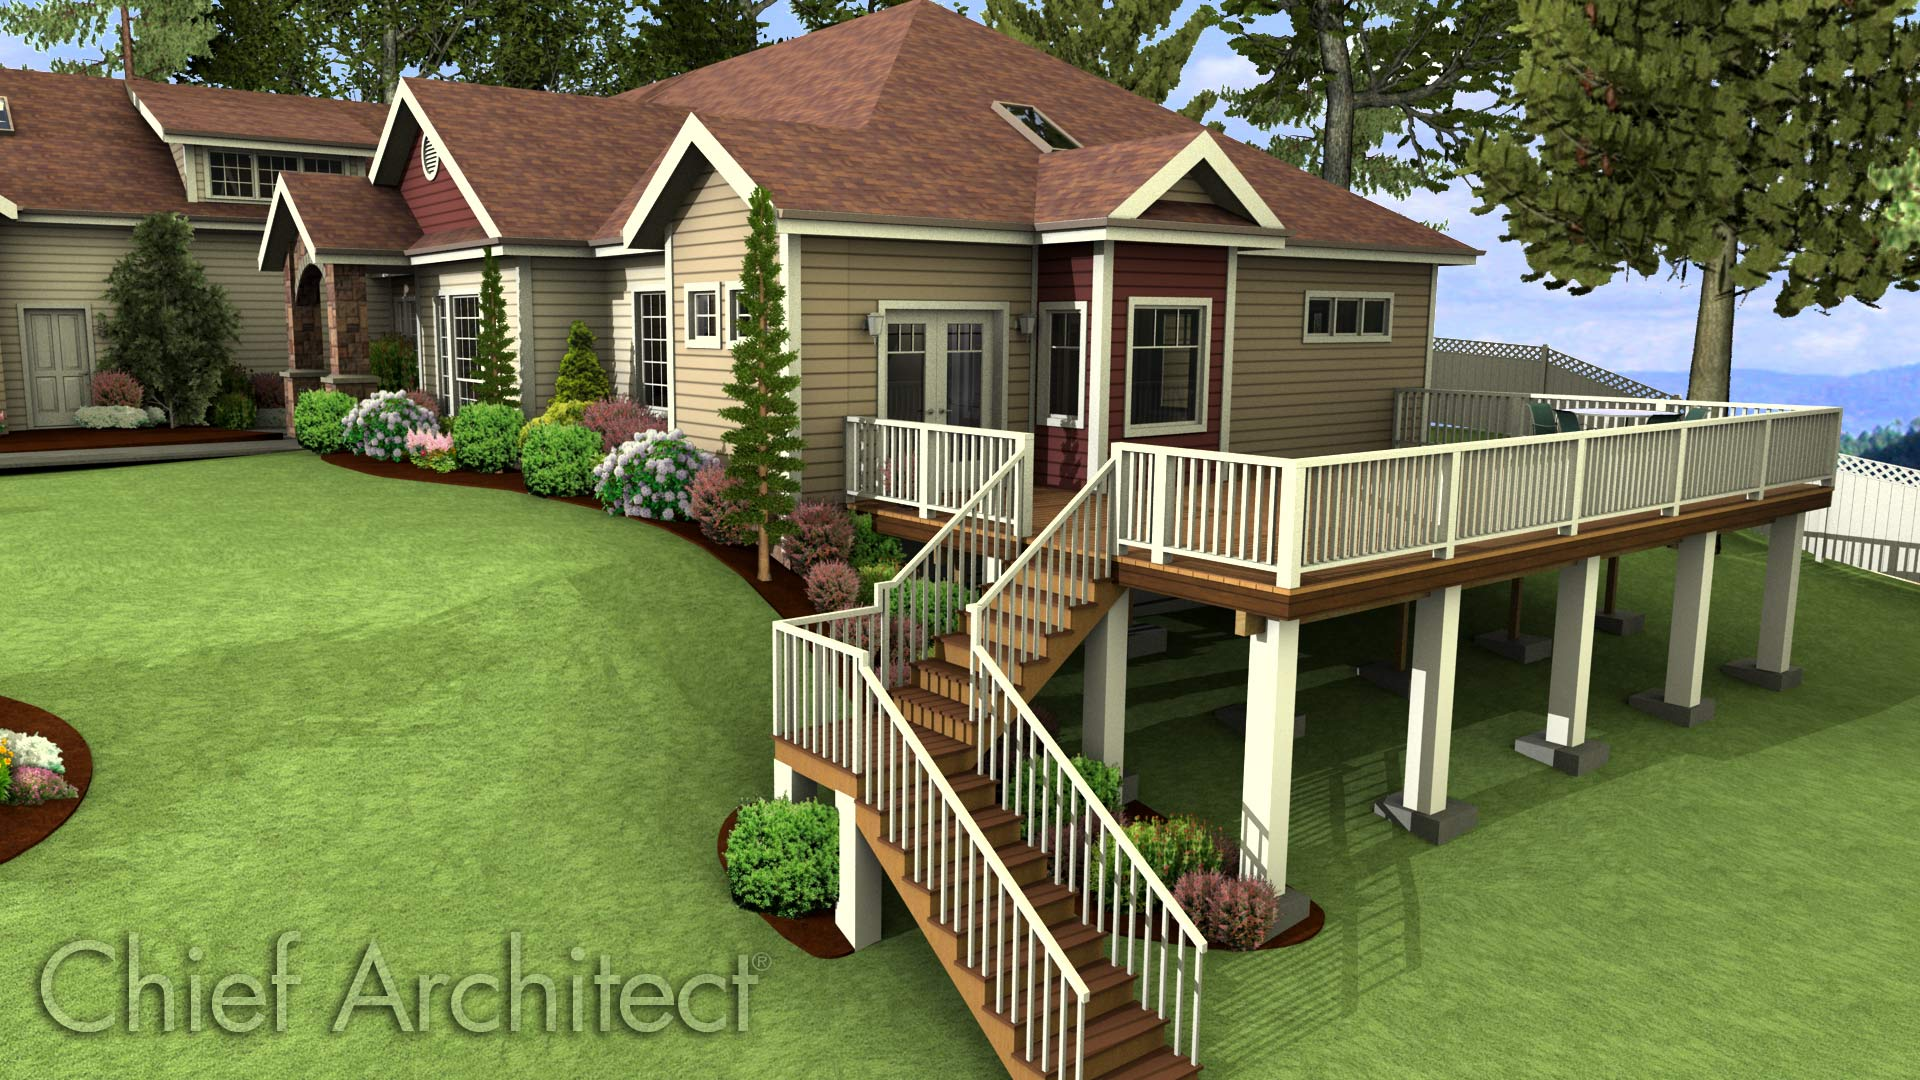 Chief Architect Home Design Software Sample Gallery